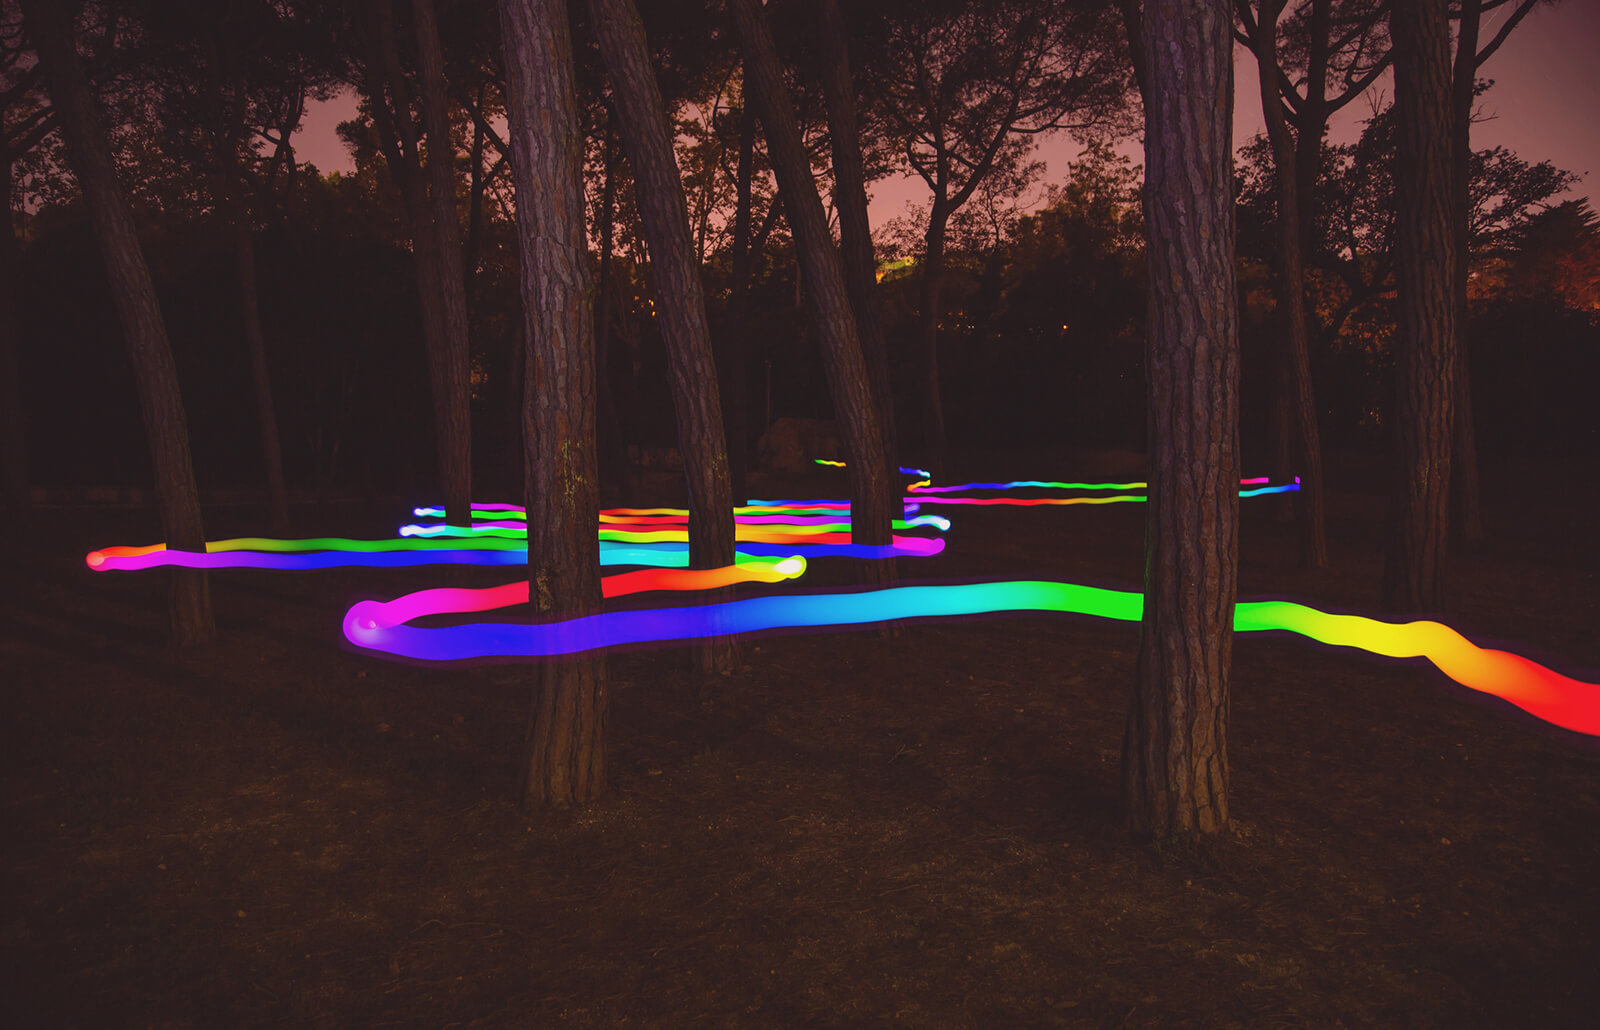 A singular rainbow line darts between a series of trees in the woods, almost as if leaving a path of motion.